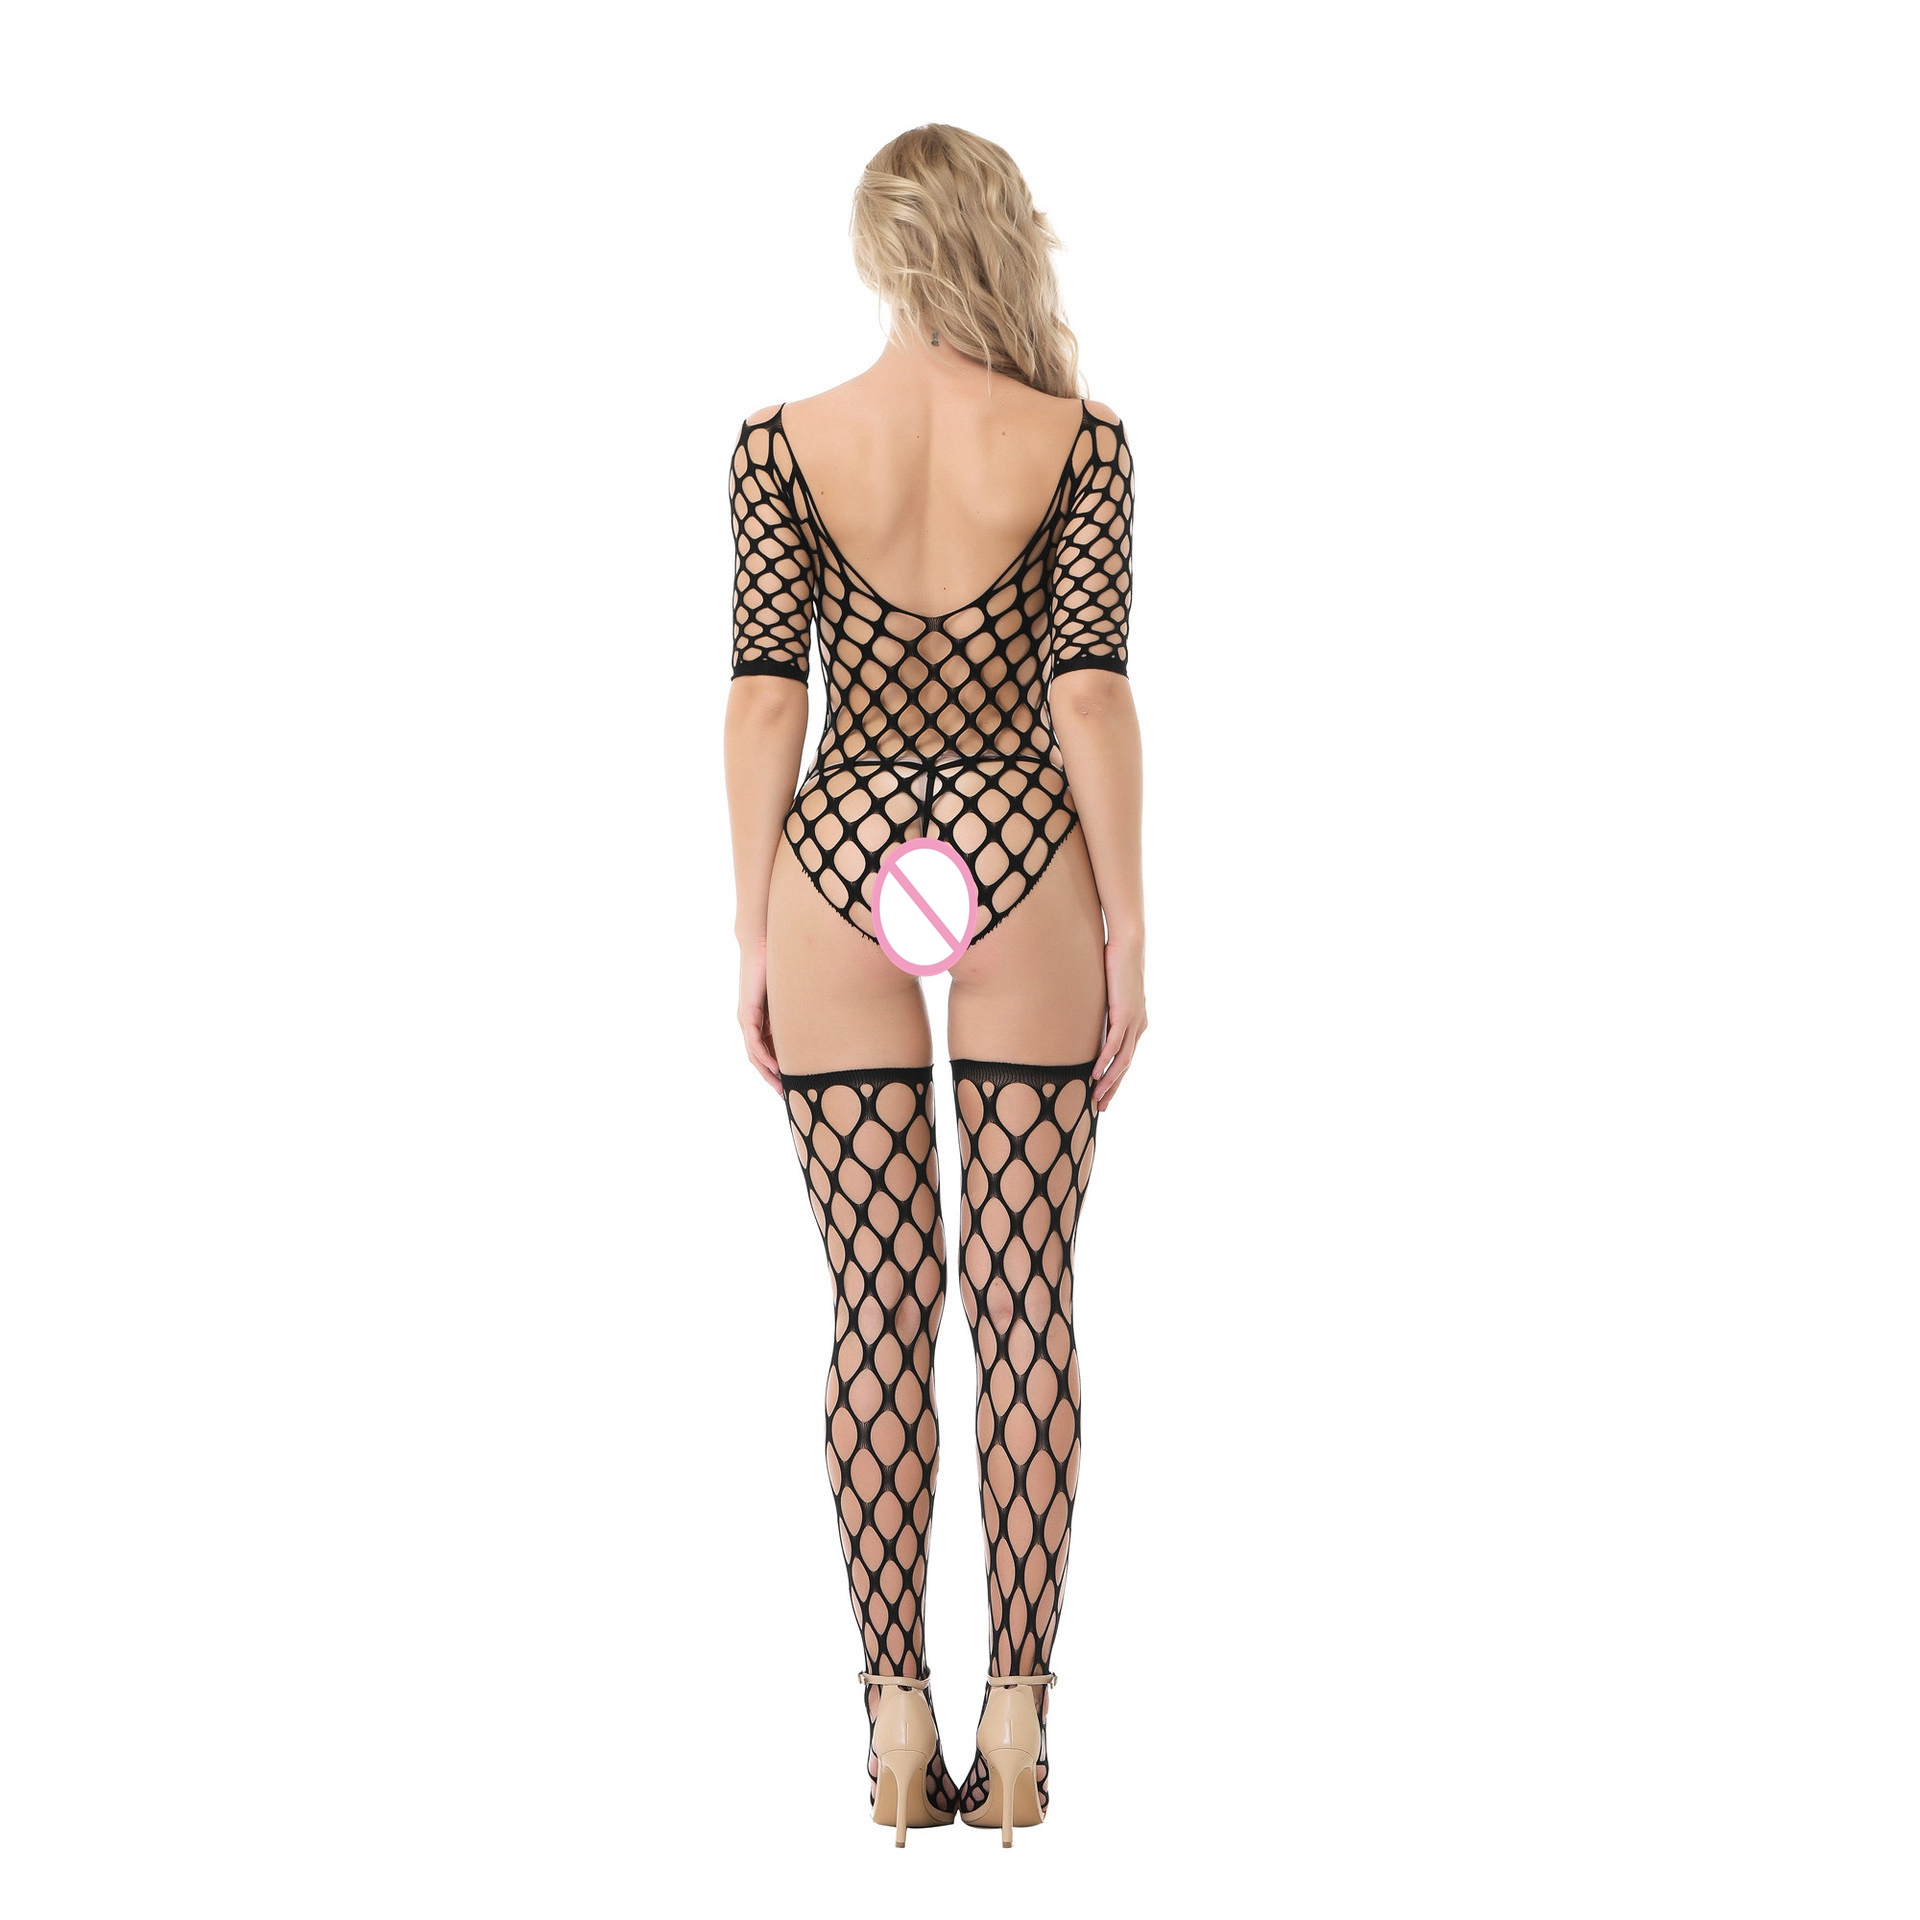 Women Hot Sexy Lingerie Big Mesh Fishnet Body Stocking Hollow Out Sexy Underwear Open Crotch Sexy Costume Erotic Dress Lenceria